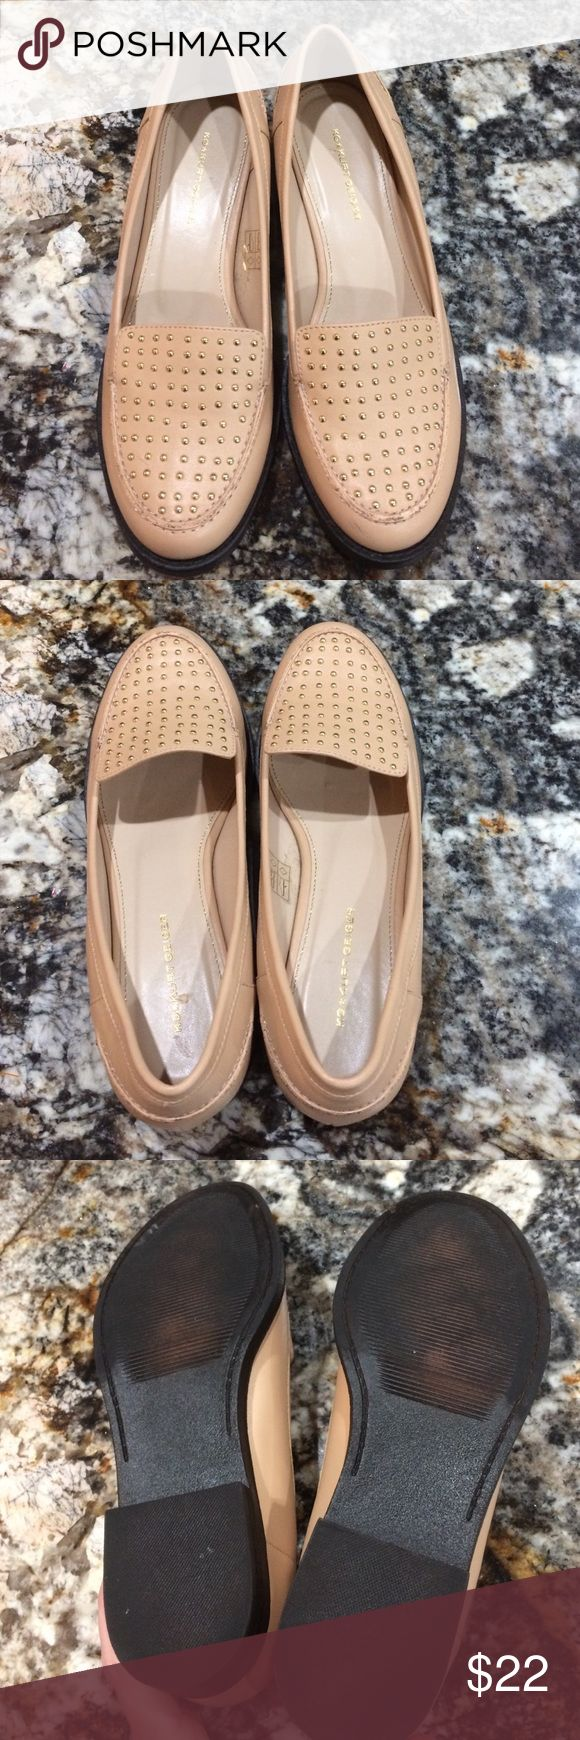 Kurt Geiger studded leather loafers never worn Kurt Geiger studded loafers never worn but scratched from storage.  See photos. Leather Kurt Geiger Shoes Flats & Loafers